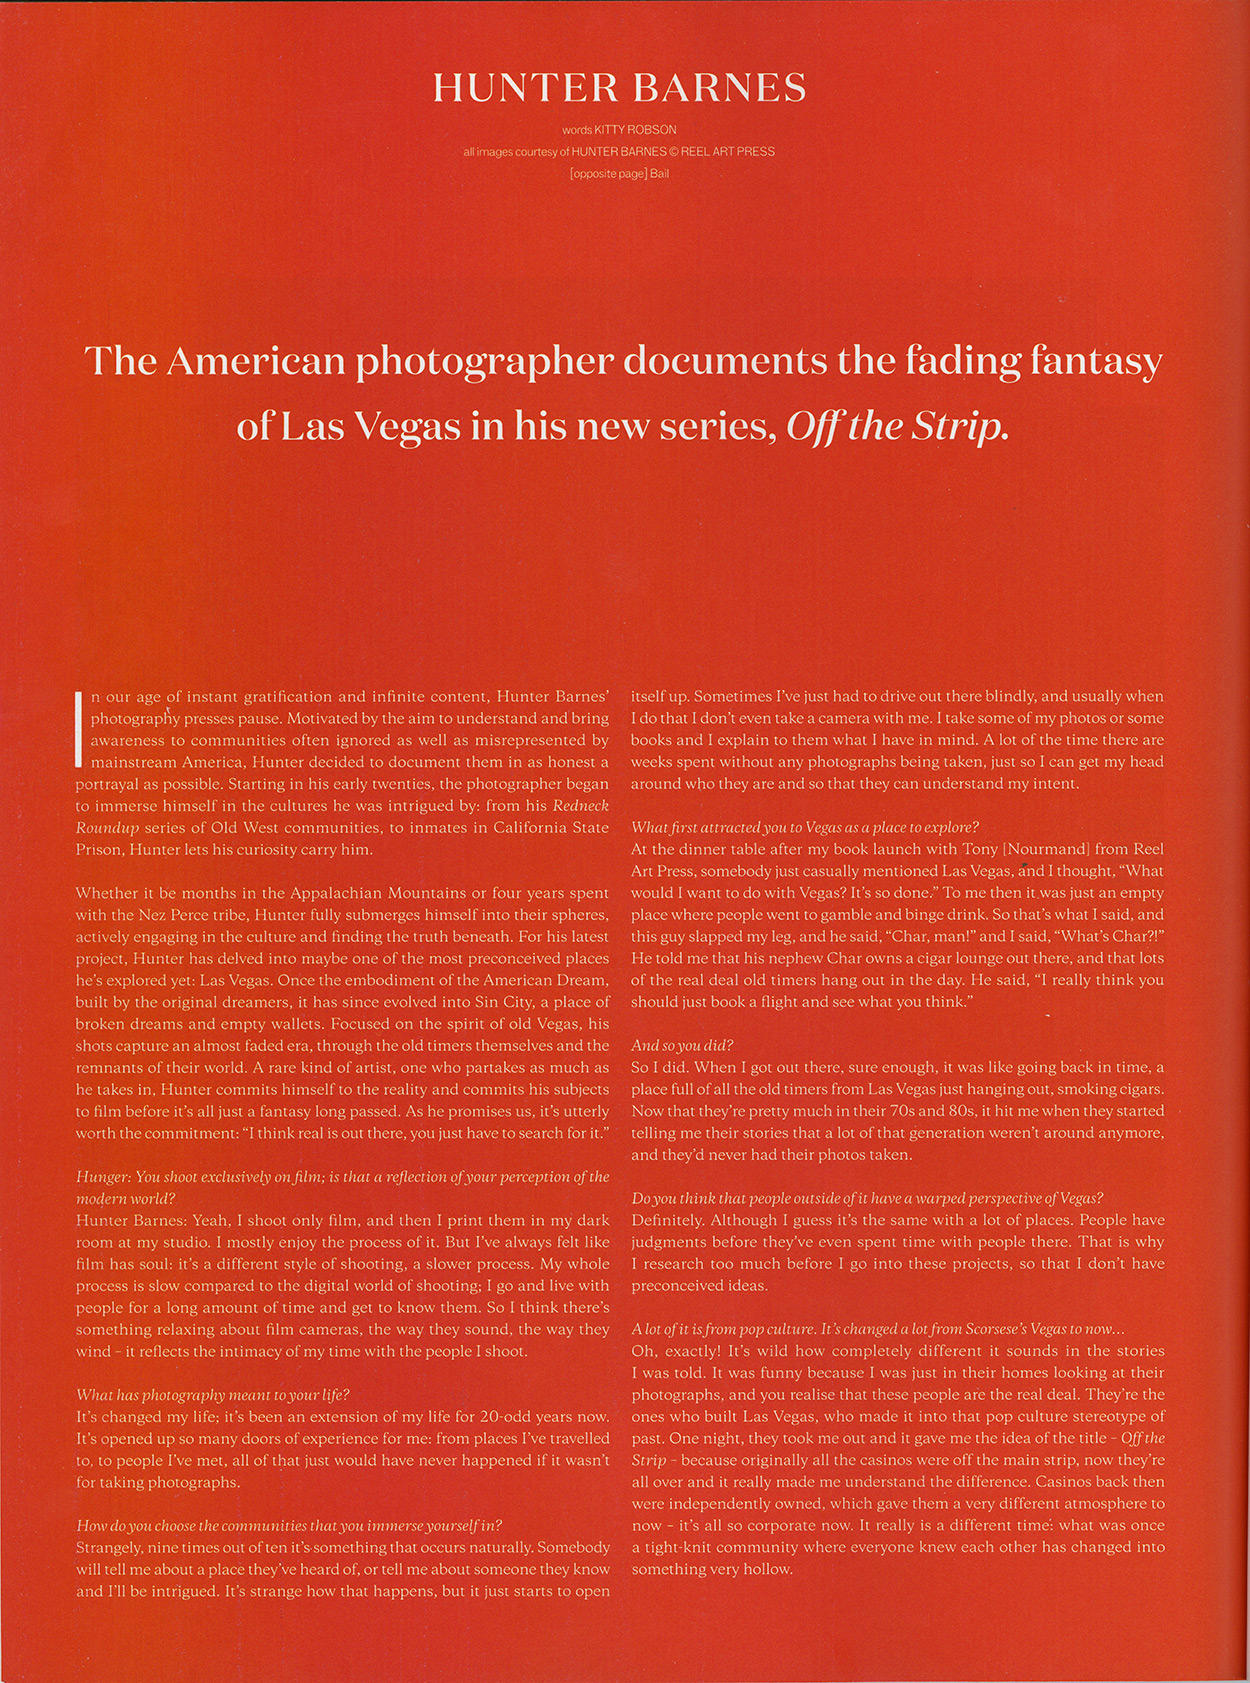 The American photographer documents the fading fantasy of Las Vegas in his new series Off the Strip - Hunger - Page 2